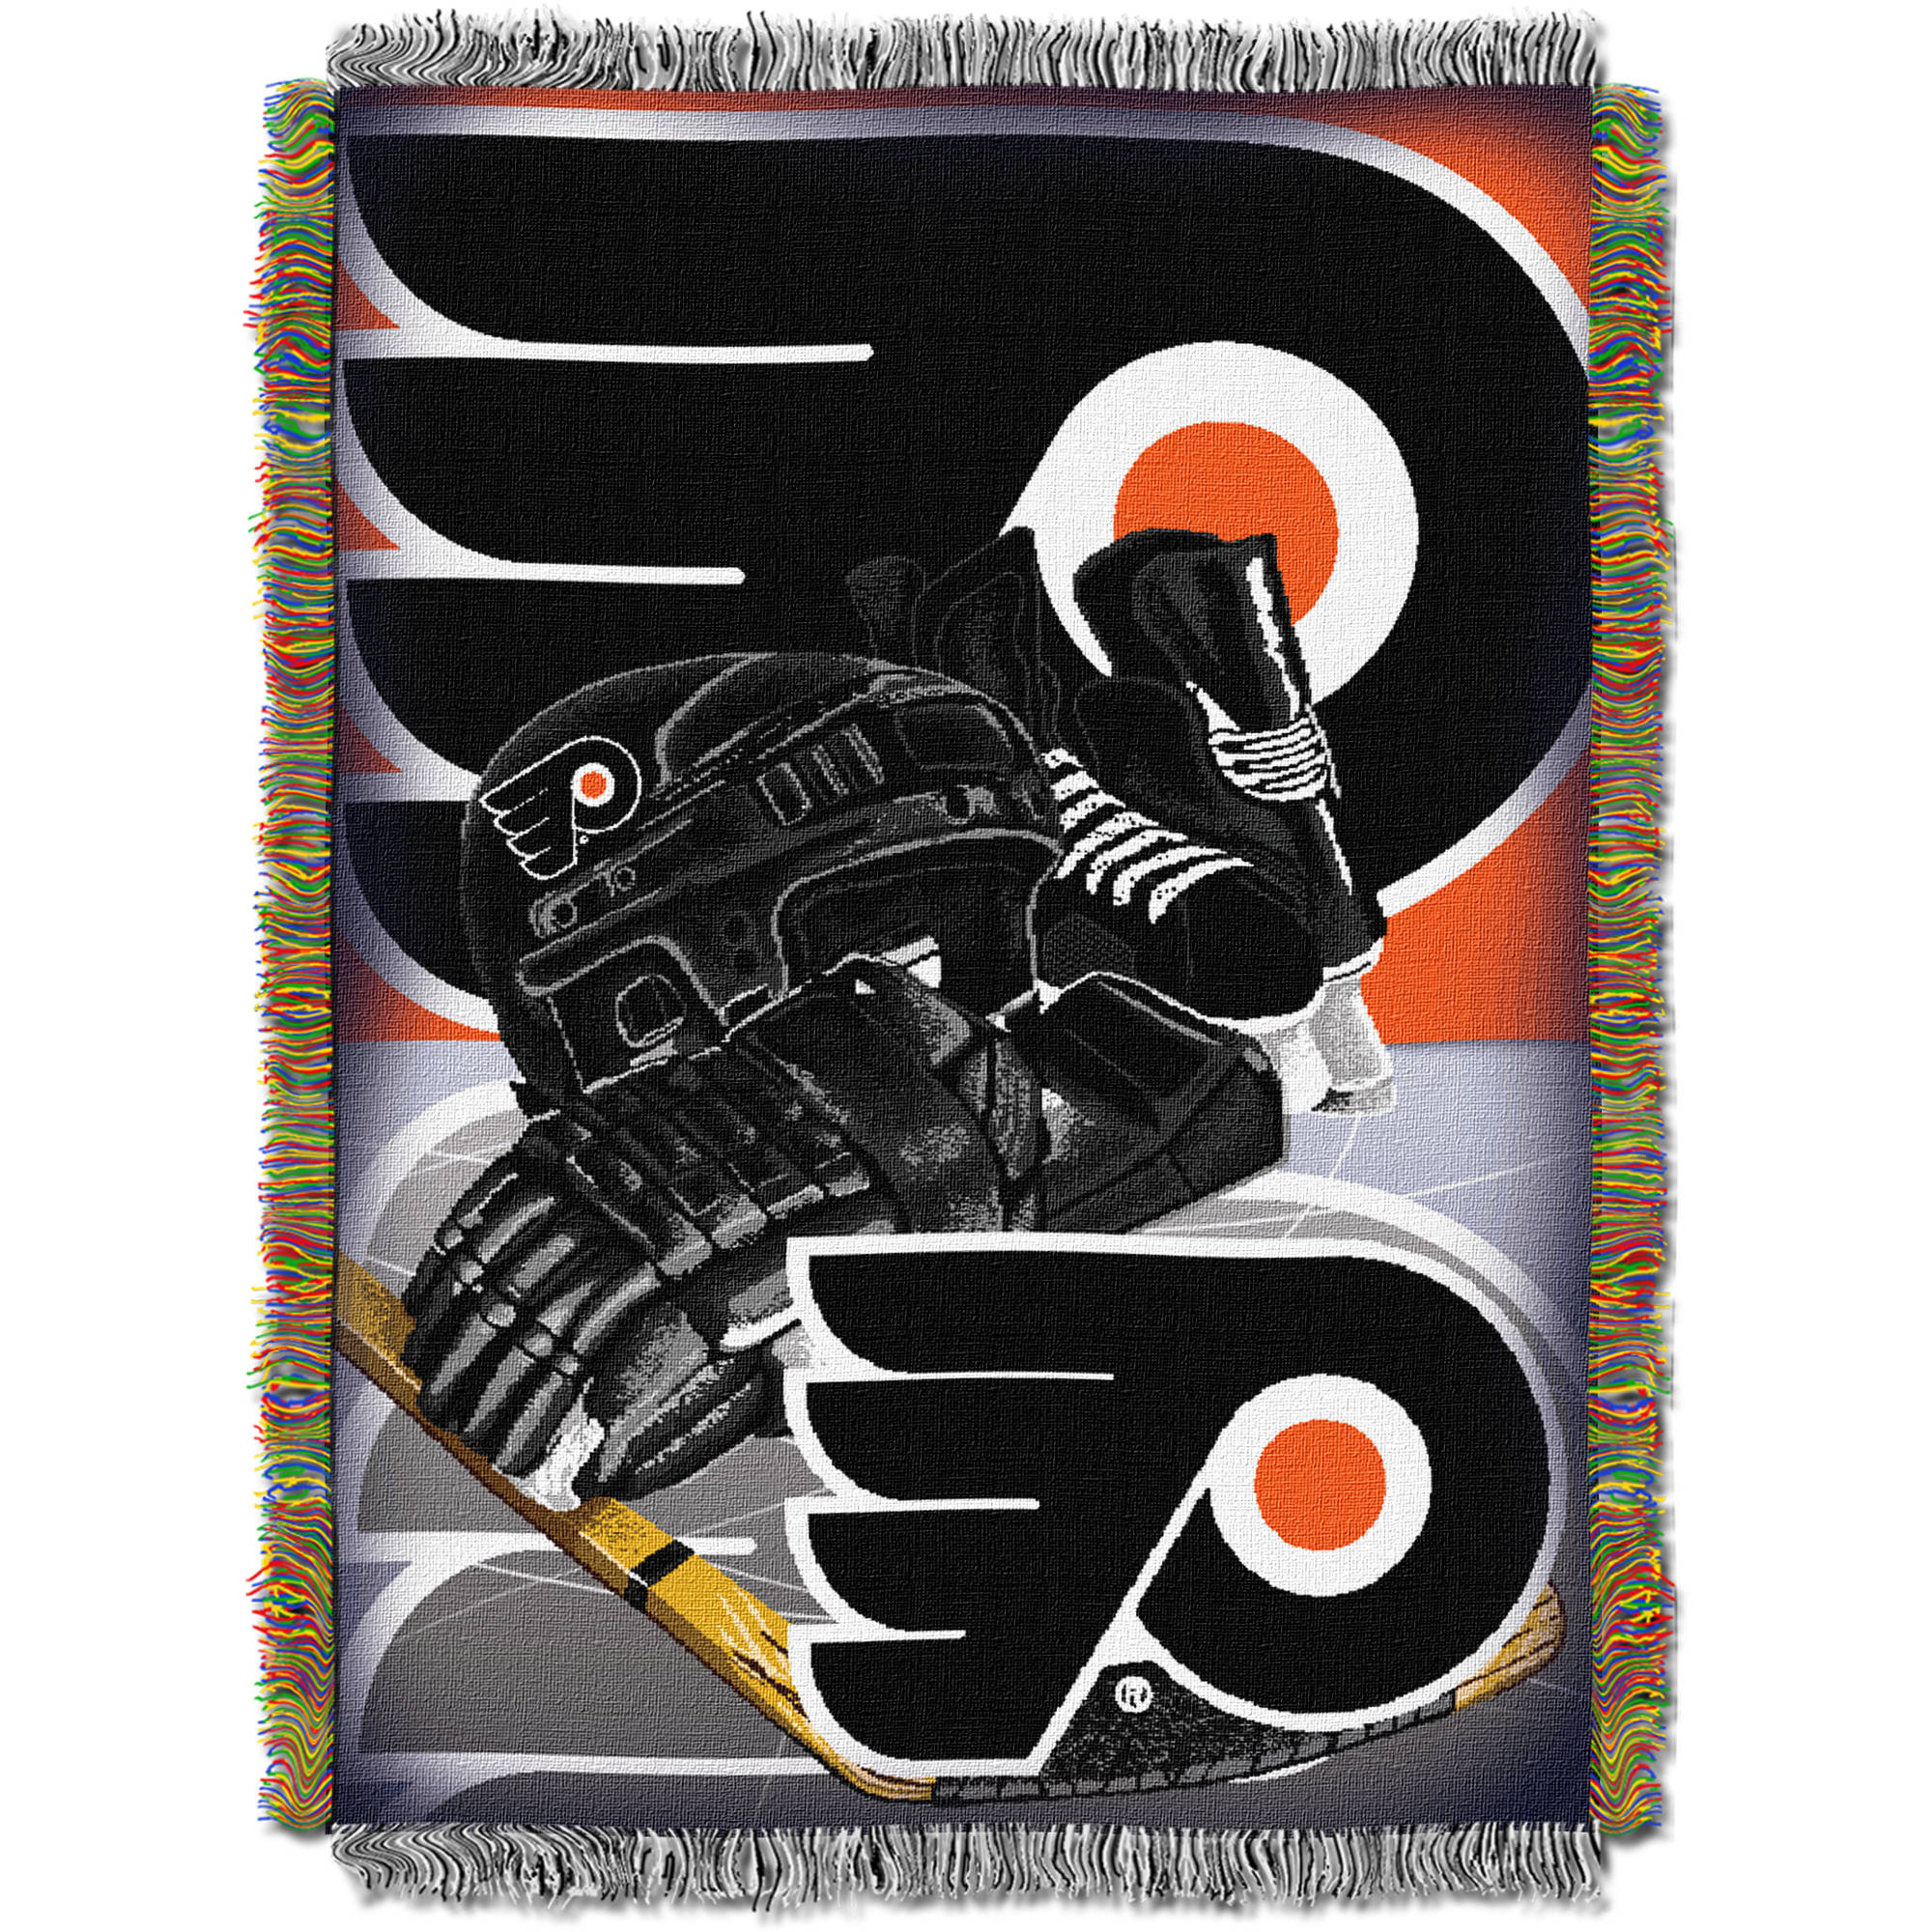 "NHL 48"" x 60"" Home Ice Advantage Series Tapestry Throw, Flyers"